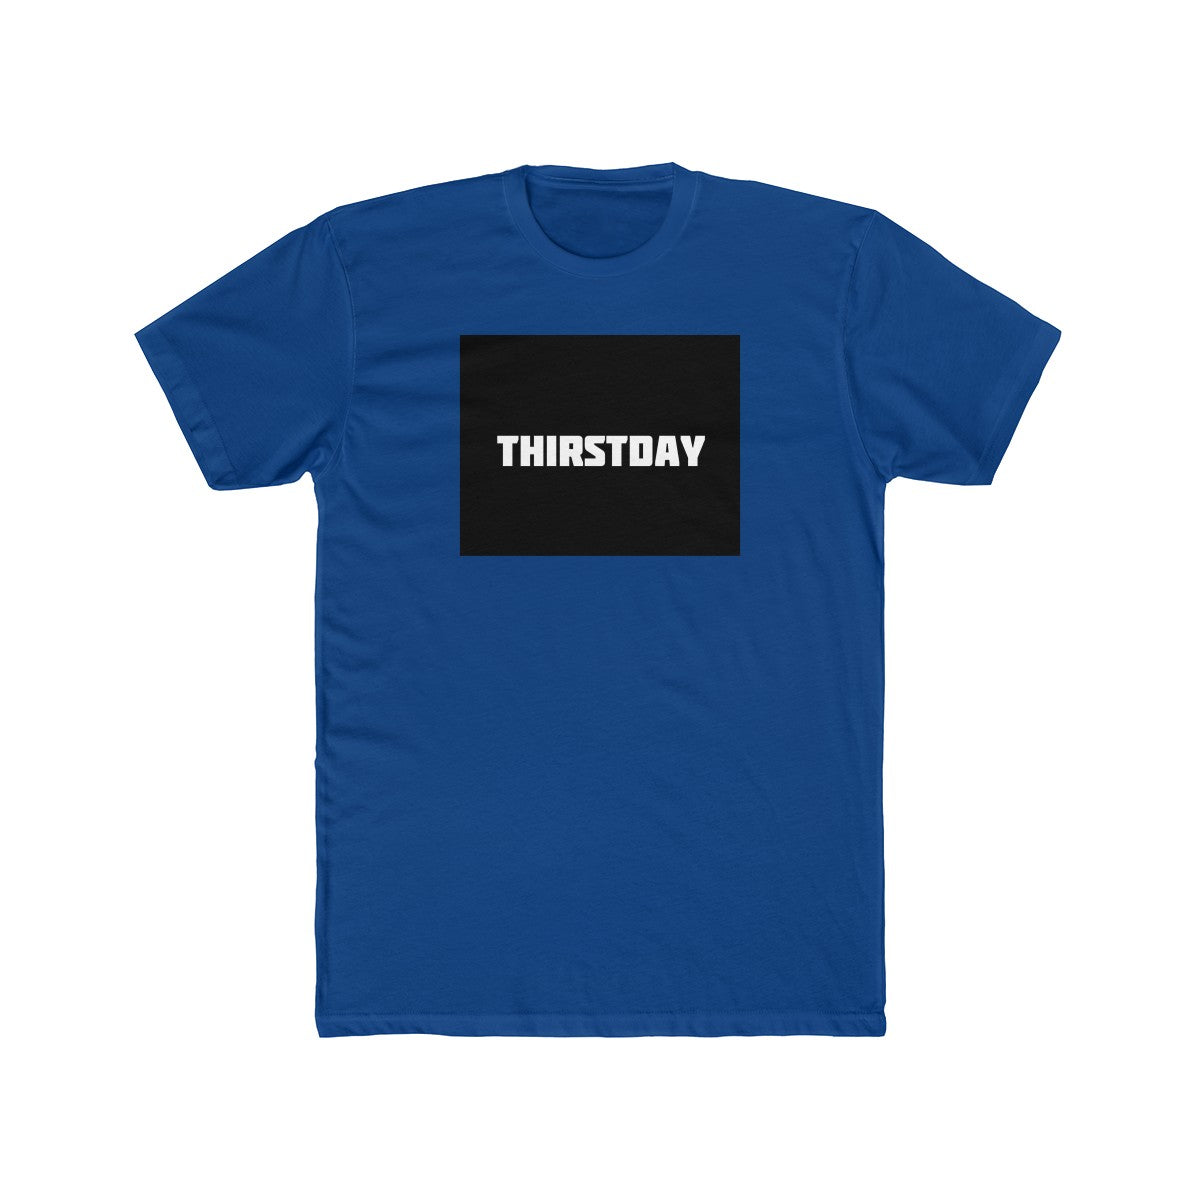 Cire Revolution Thirstday Crew Neck Tee - Royal Blue